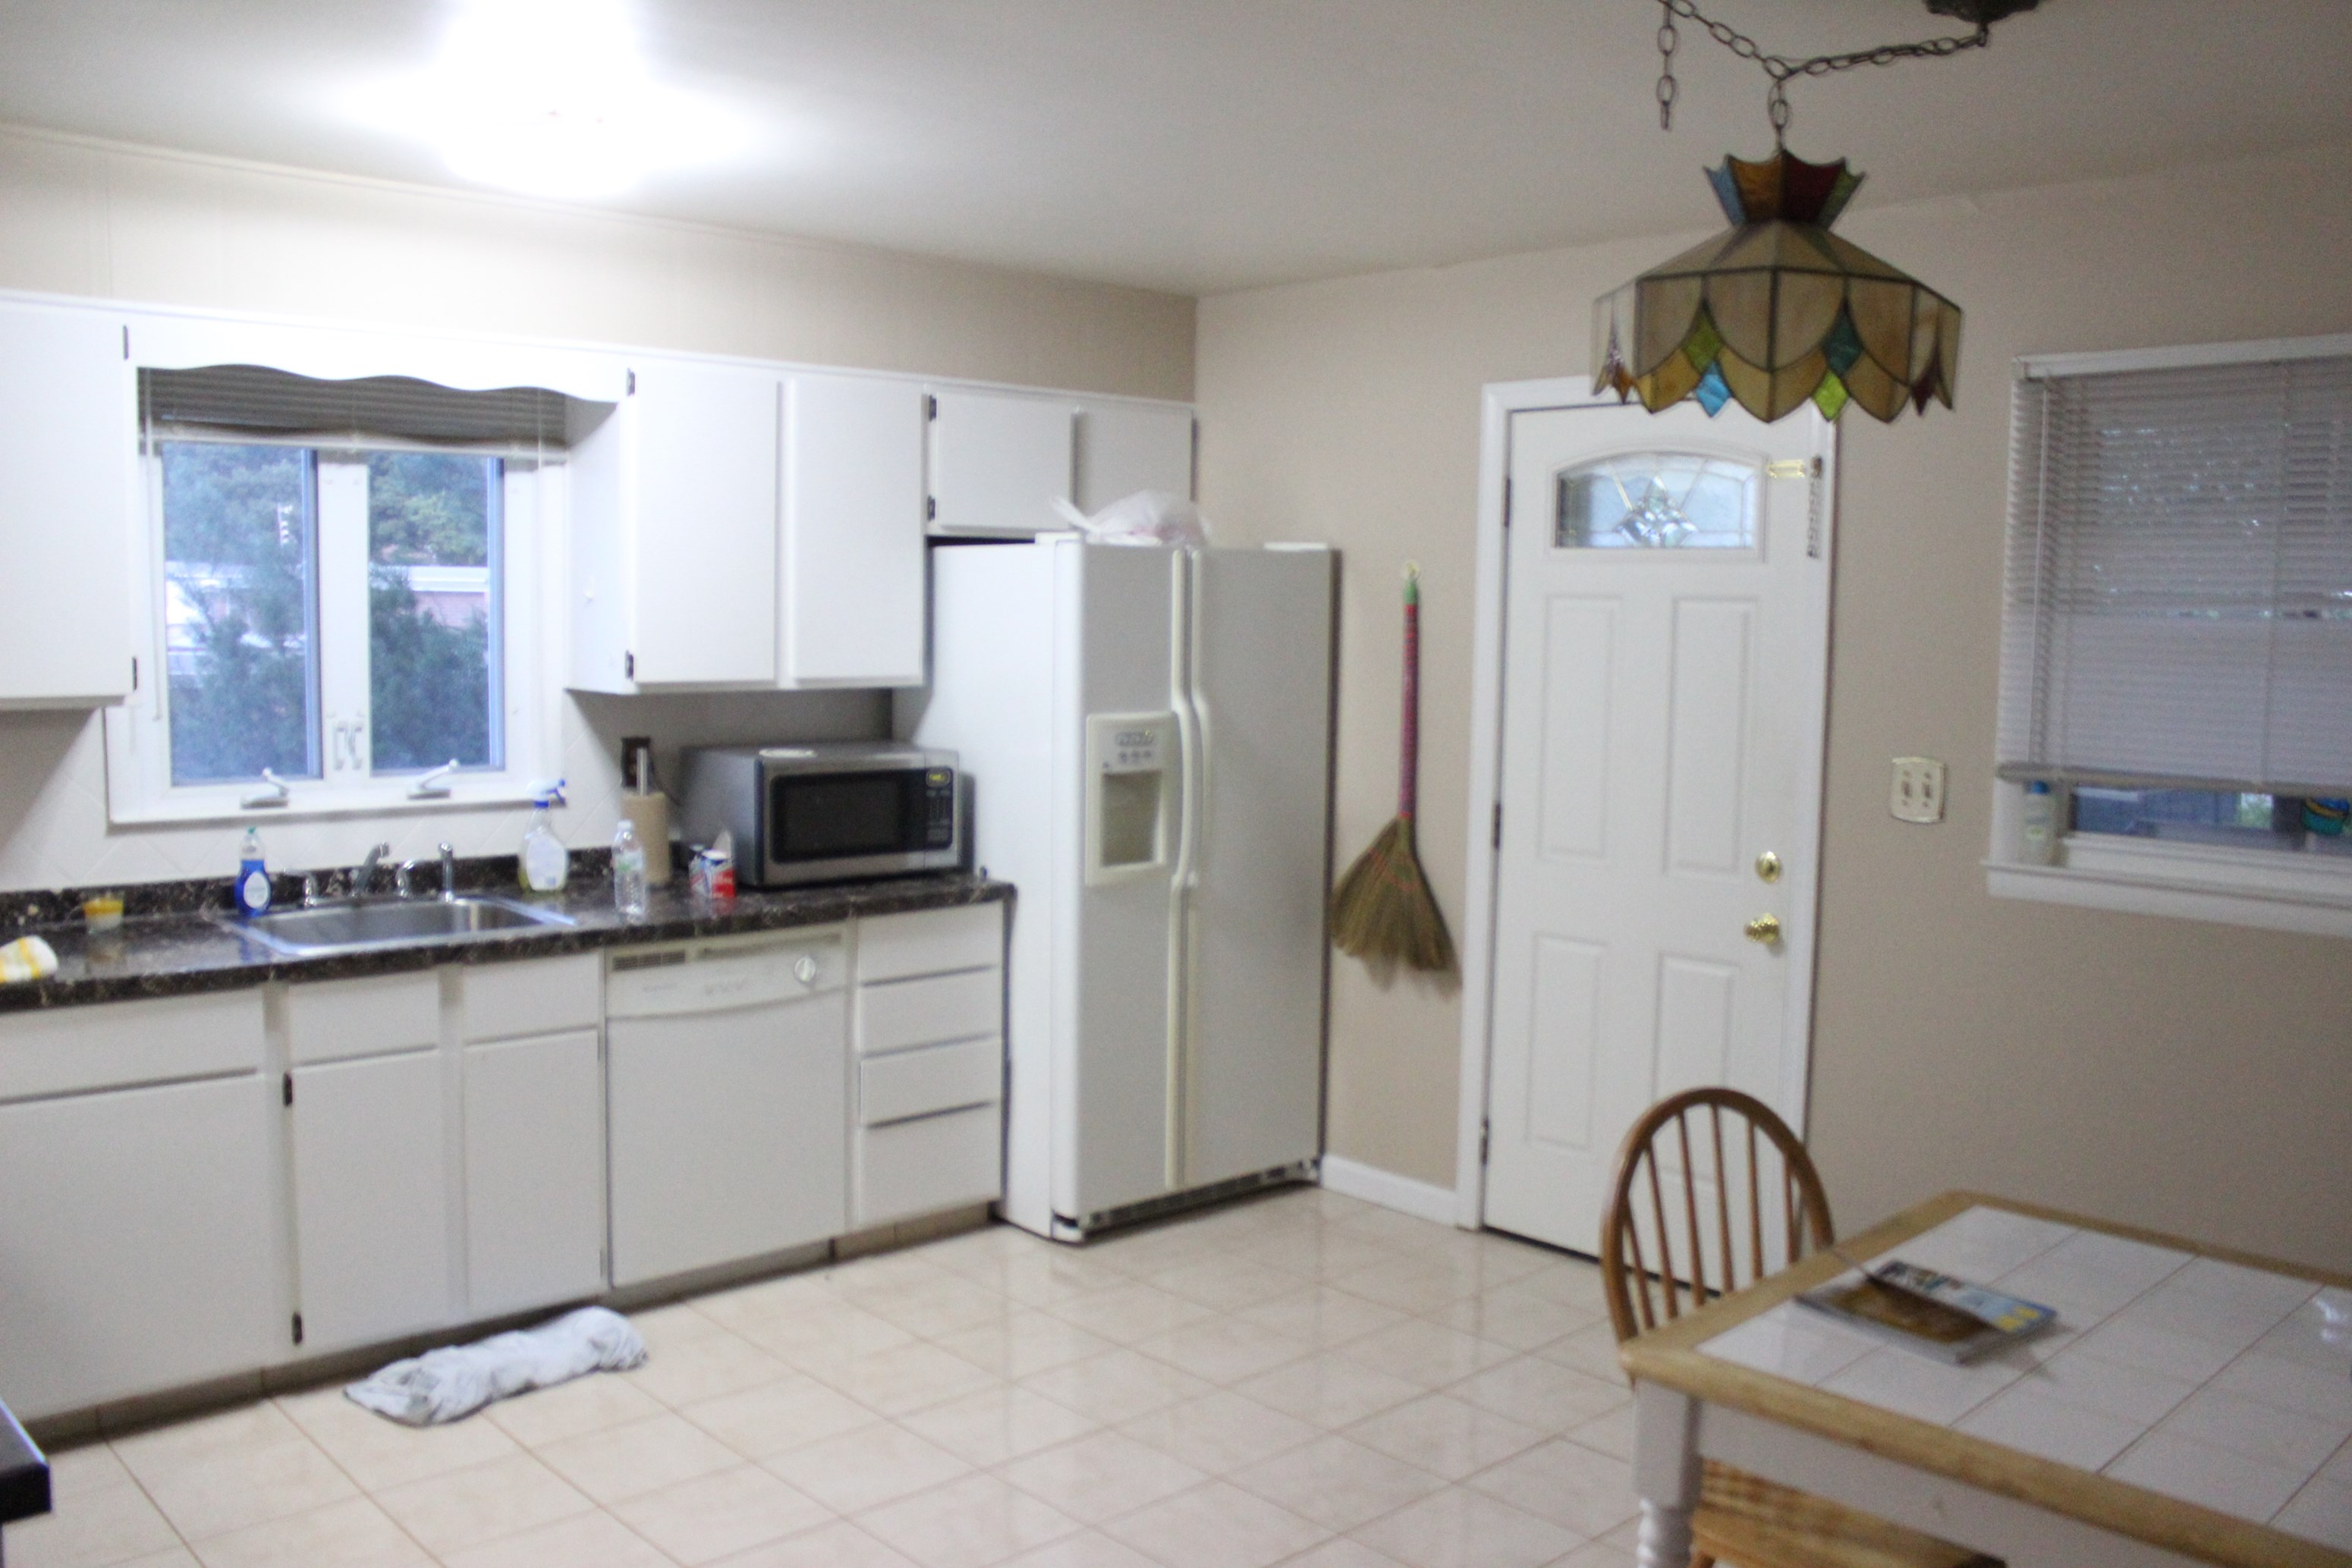 Large 2 Bedroom Apt ALL UTILITIES INCLUDED   NEAR EDISON TRAIN  Apartments for Rent in Edison  NJ   Flats to Rent   Sulekha Rentals. 3 Bedroom Apartments For Rent In Edison Nj. Home Design Ideas